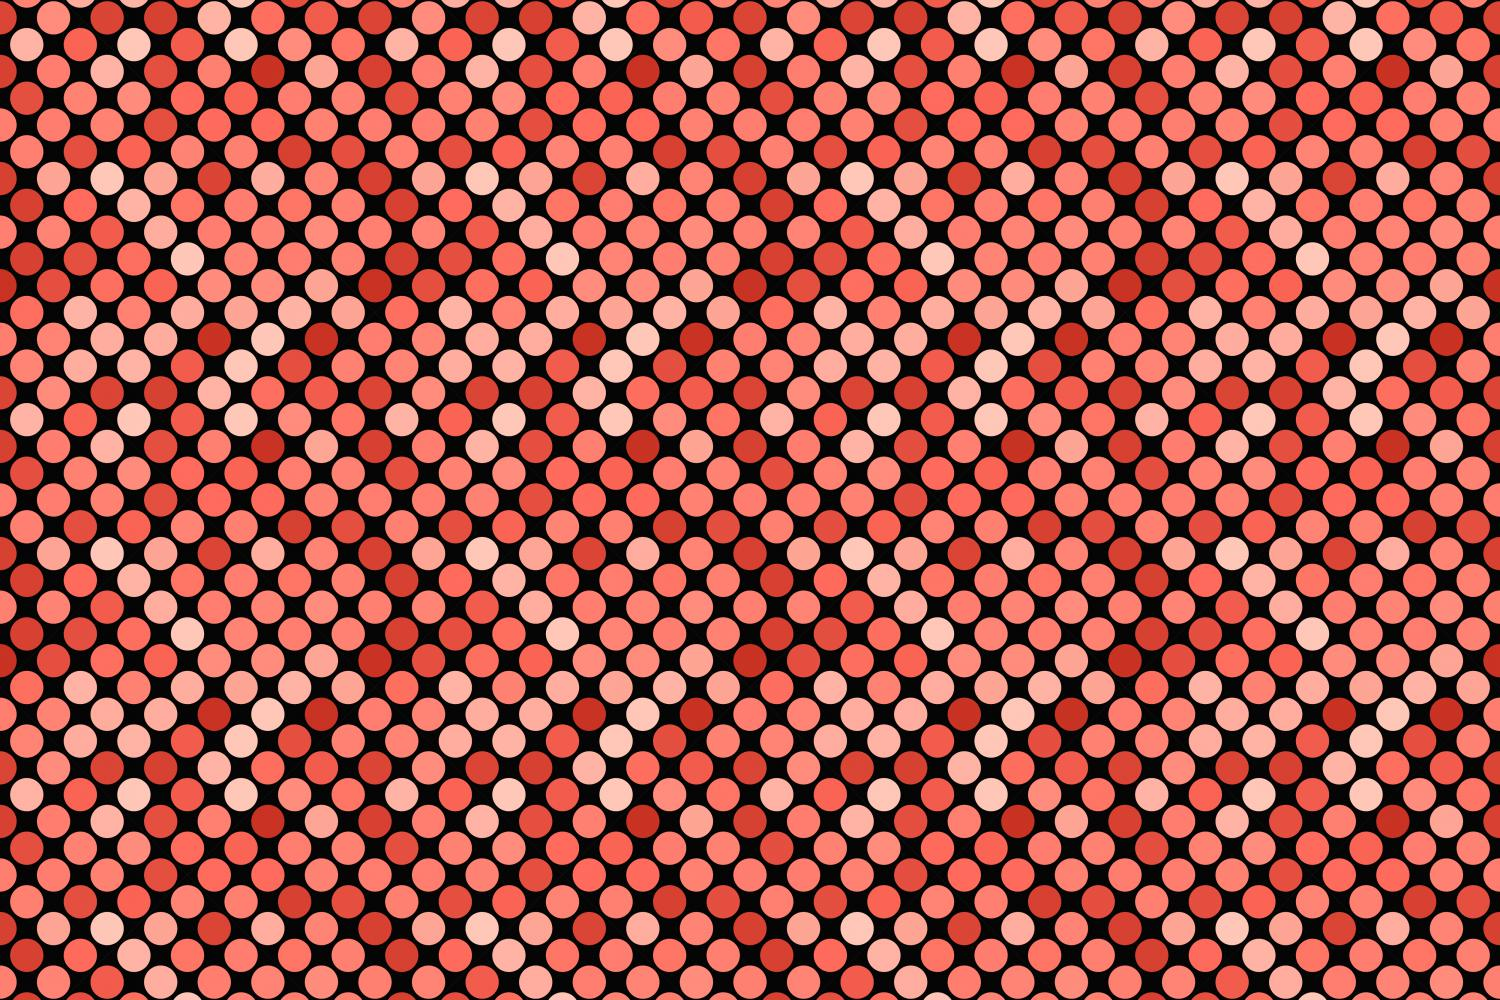 24 Seamless Red Dot Patterns example image 16